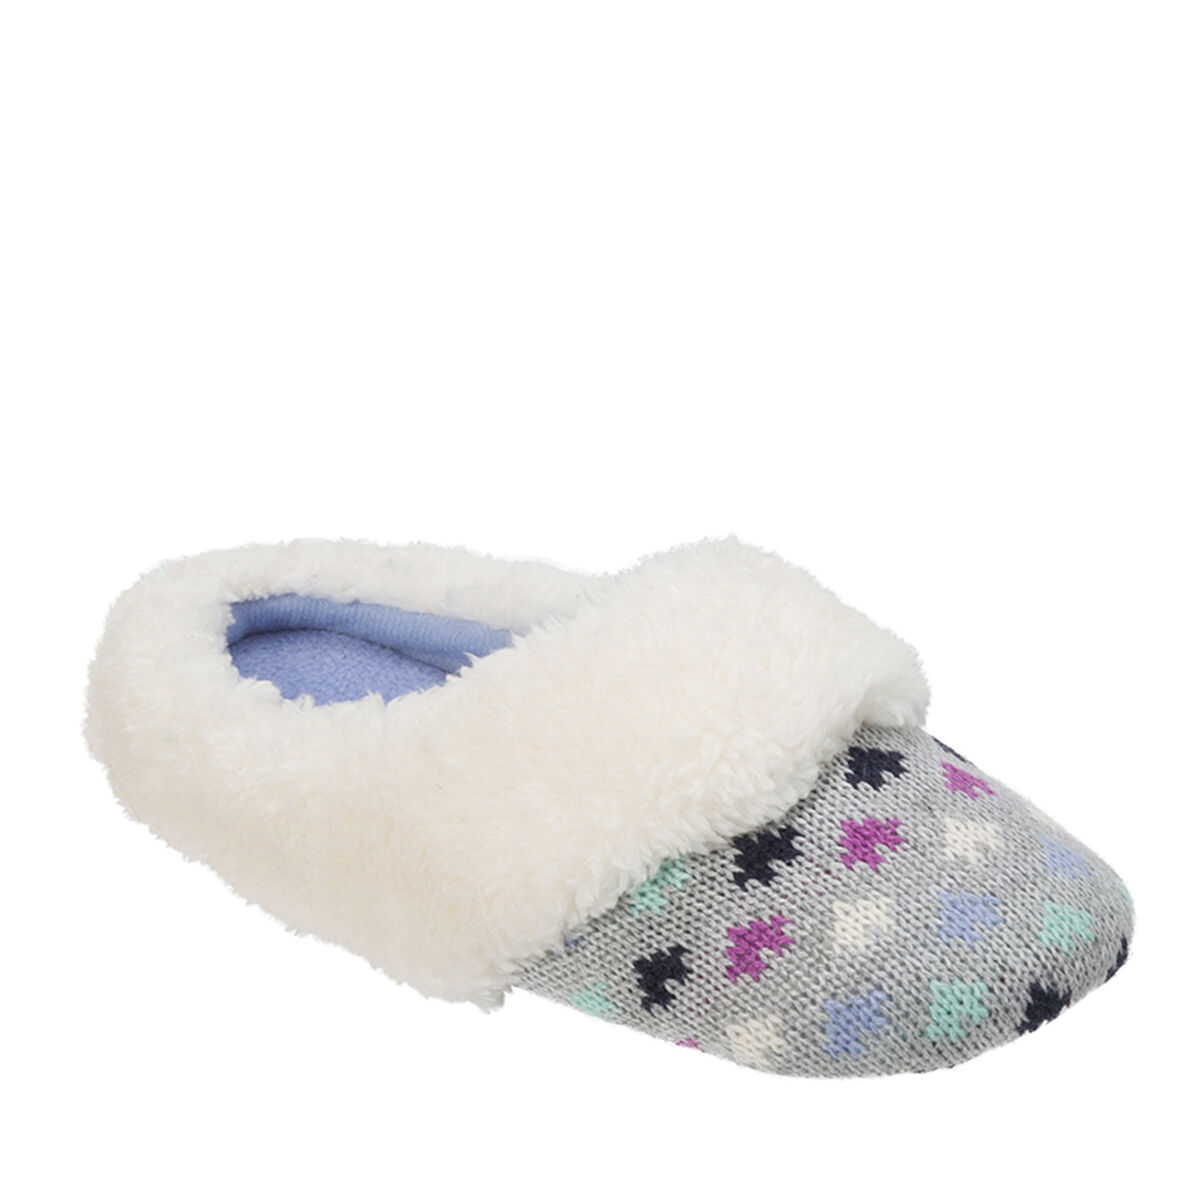 Kids Patterned Knit Clog